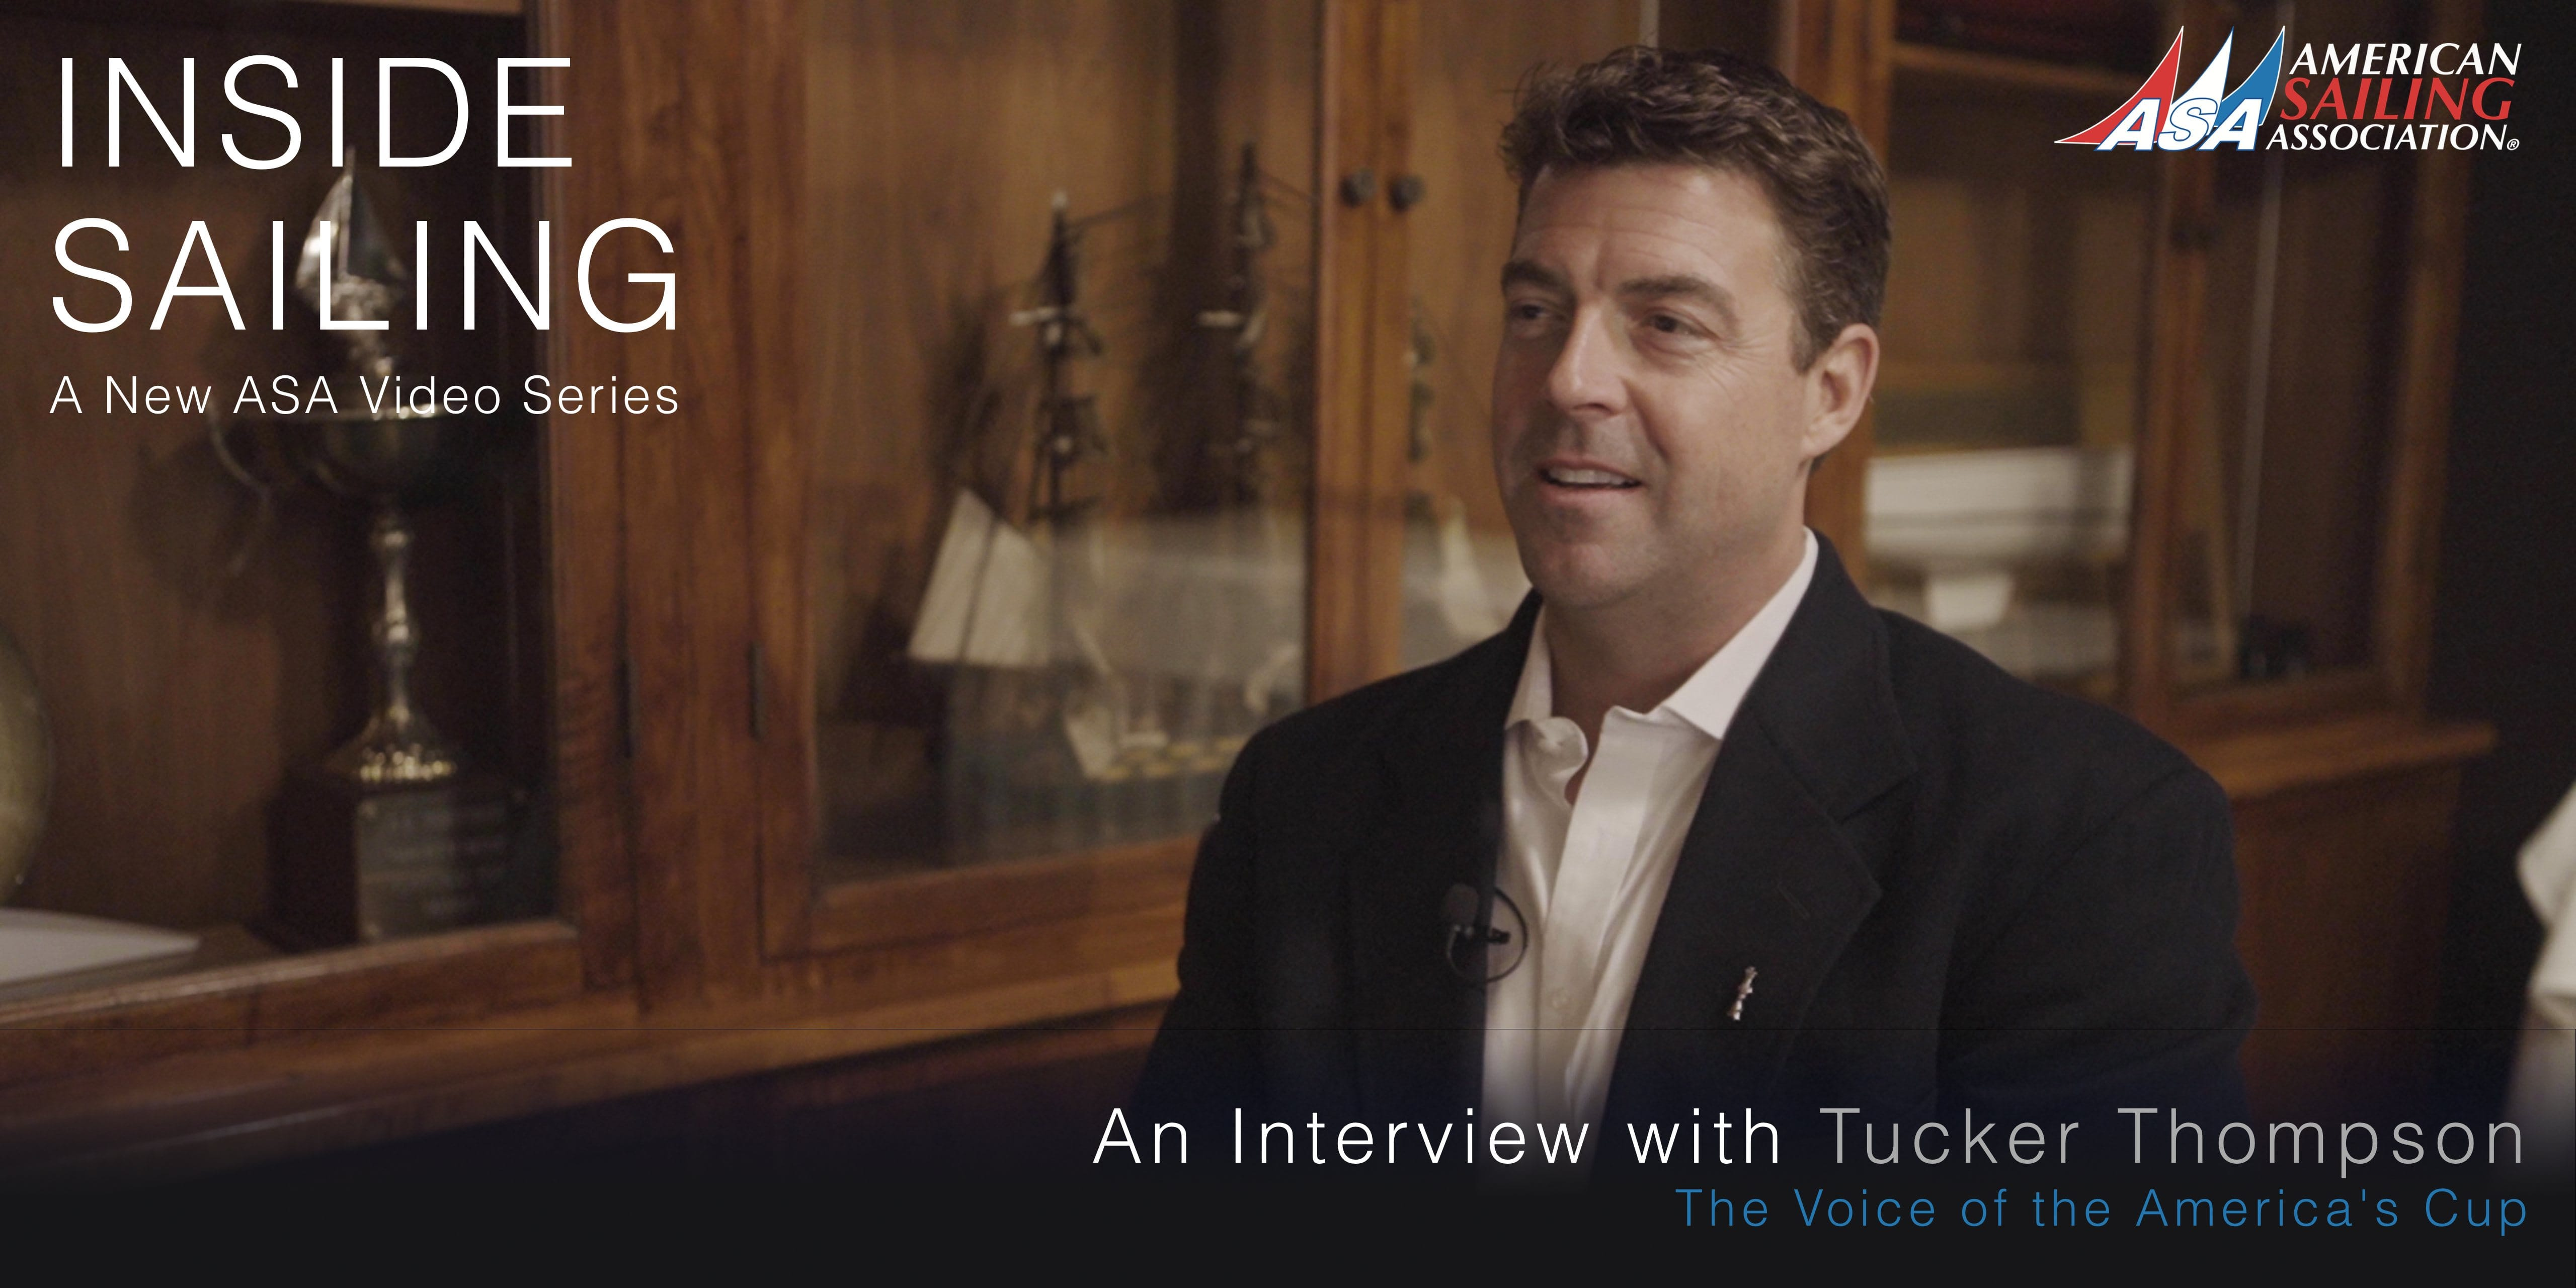 Inside Sailing - Tucker Thompson, Voice of the America's Cup